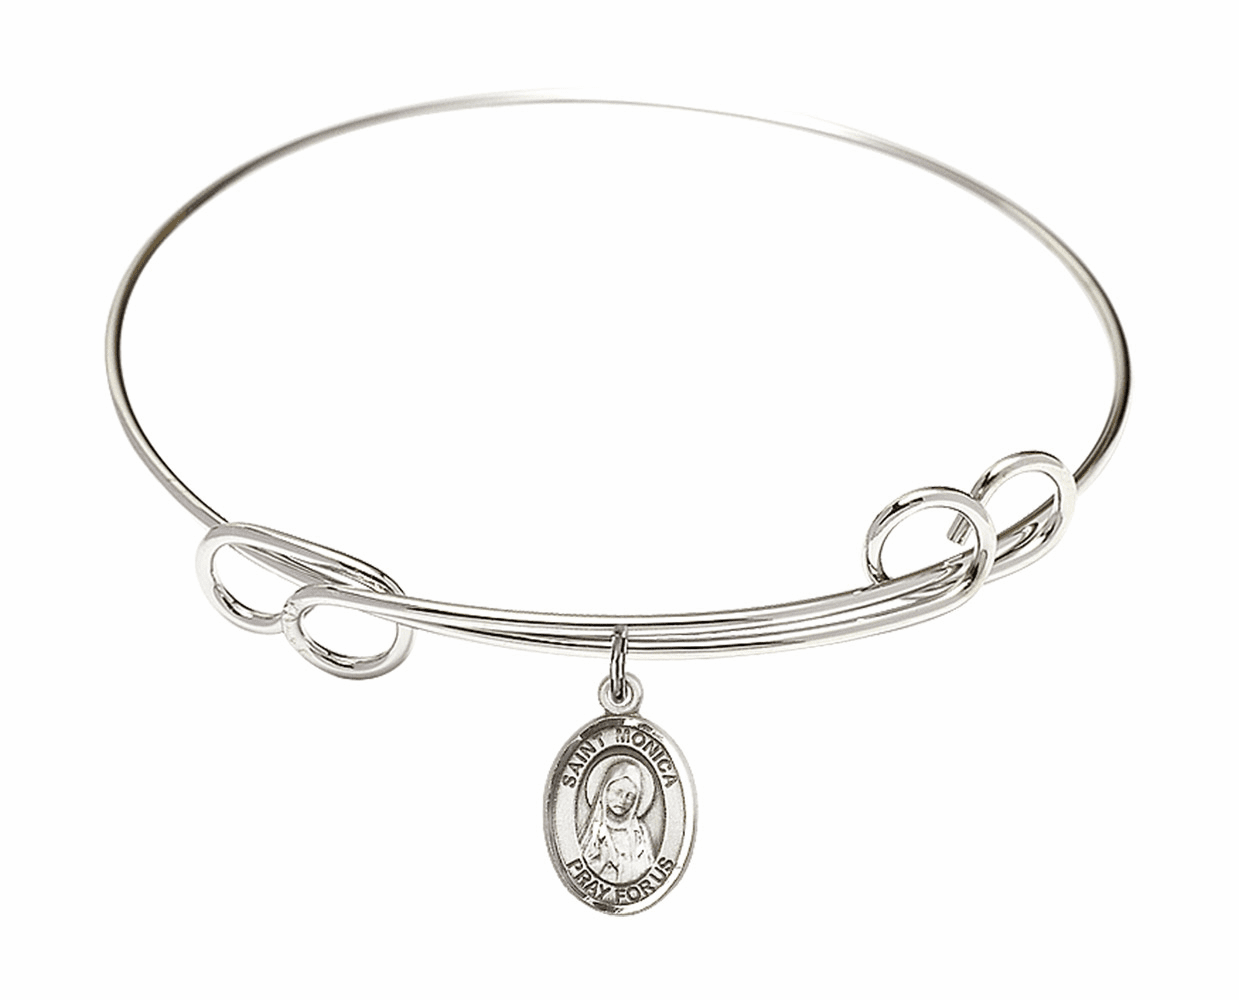 Round Loop St Monica Bangle Charm Bracelet by Bliss